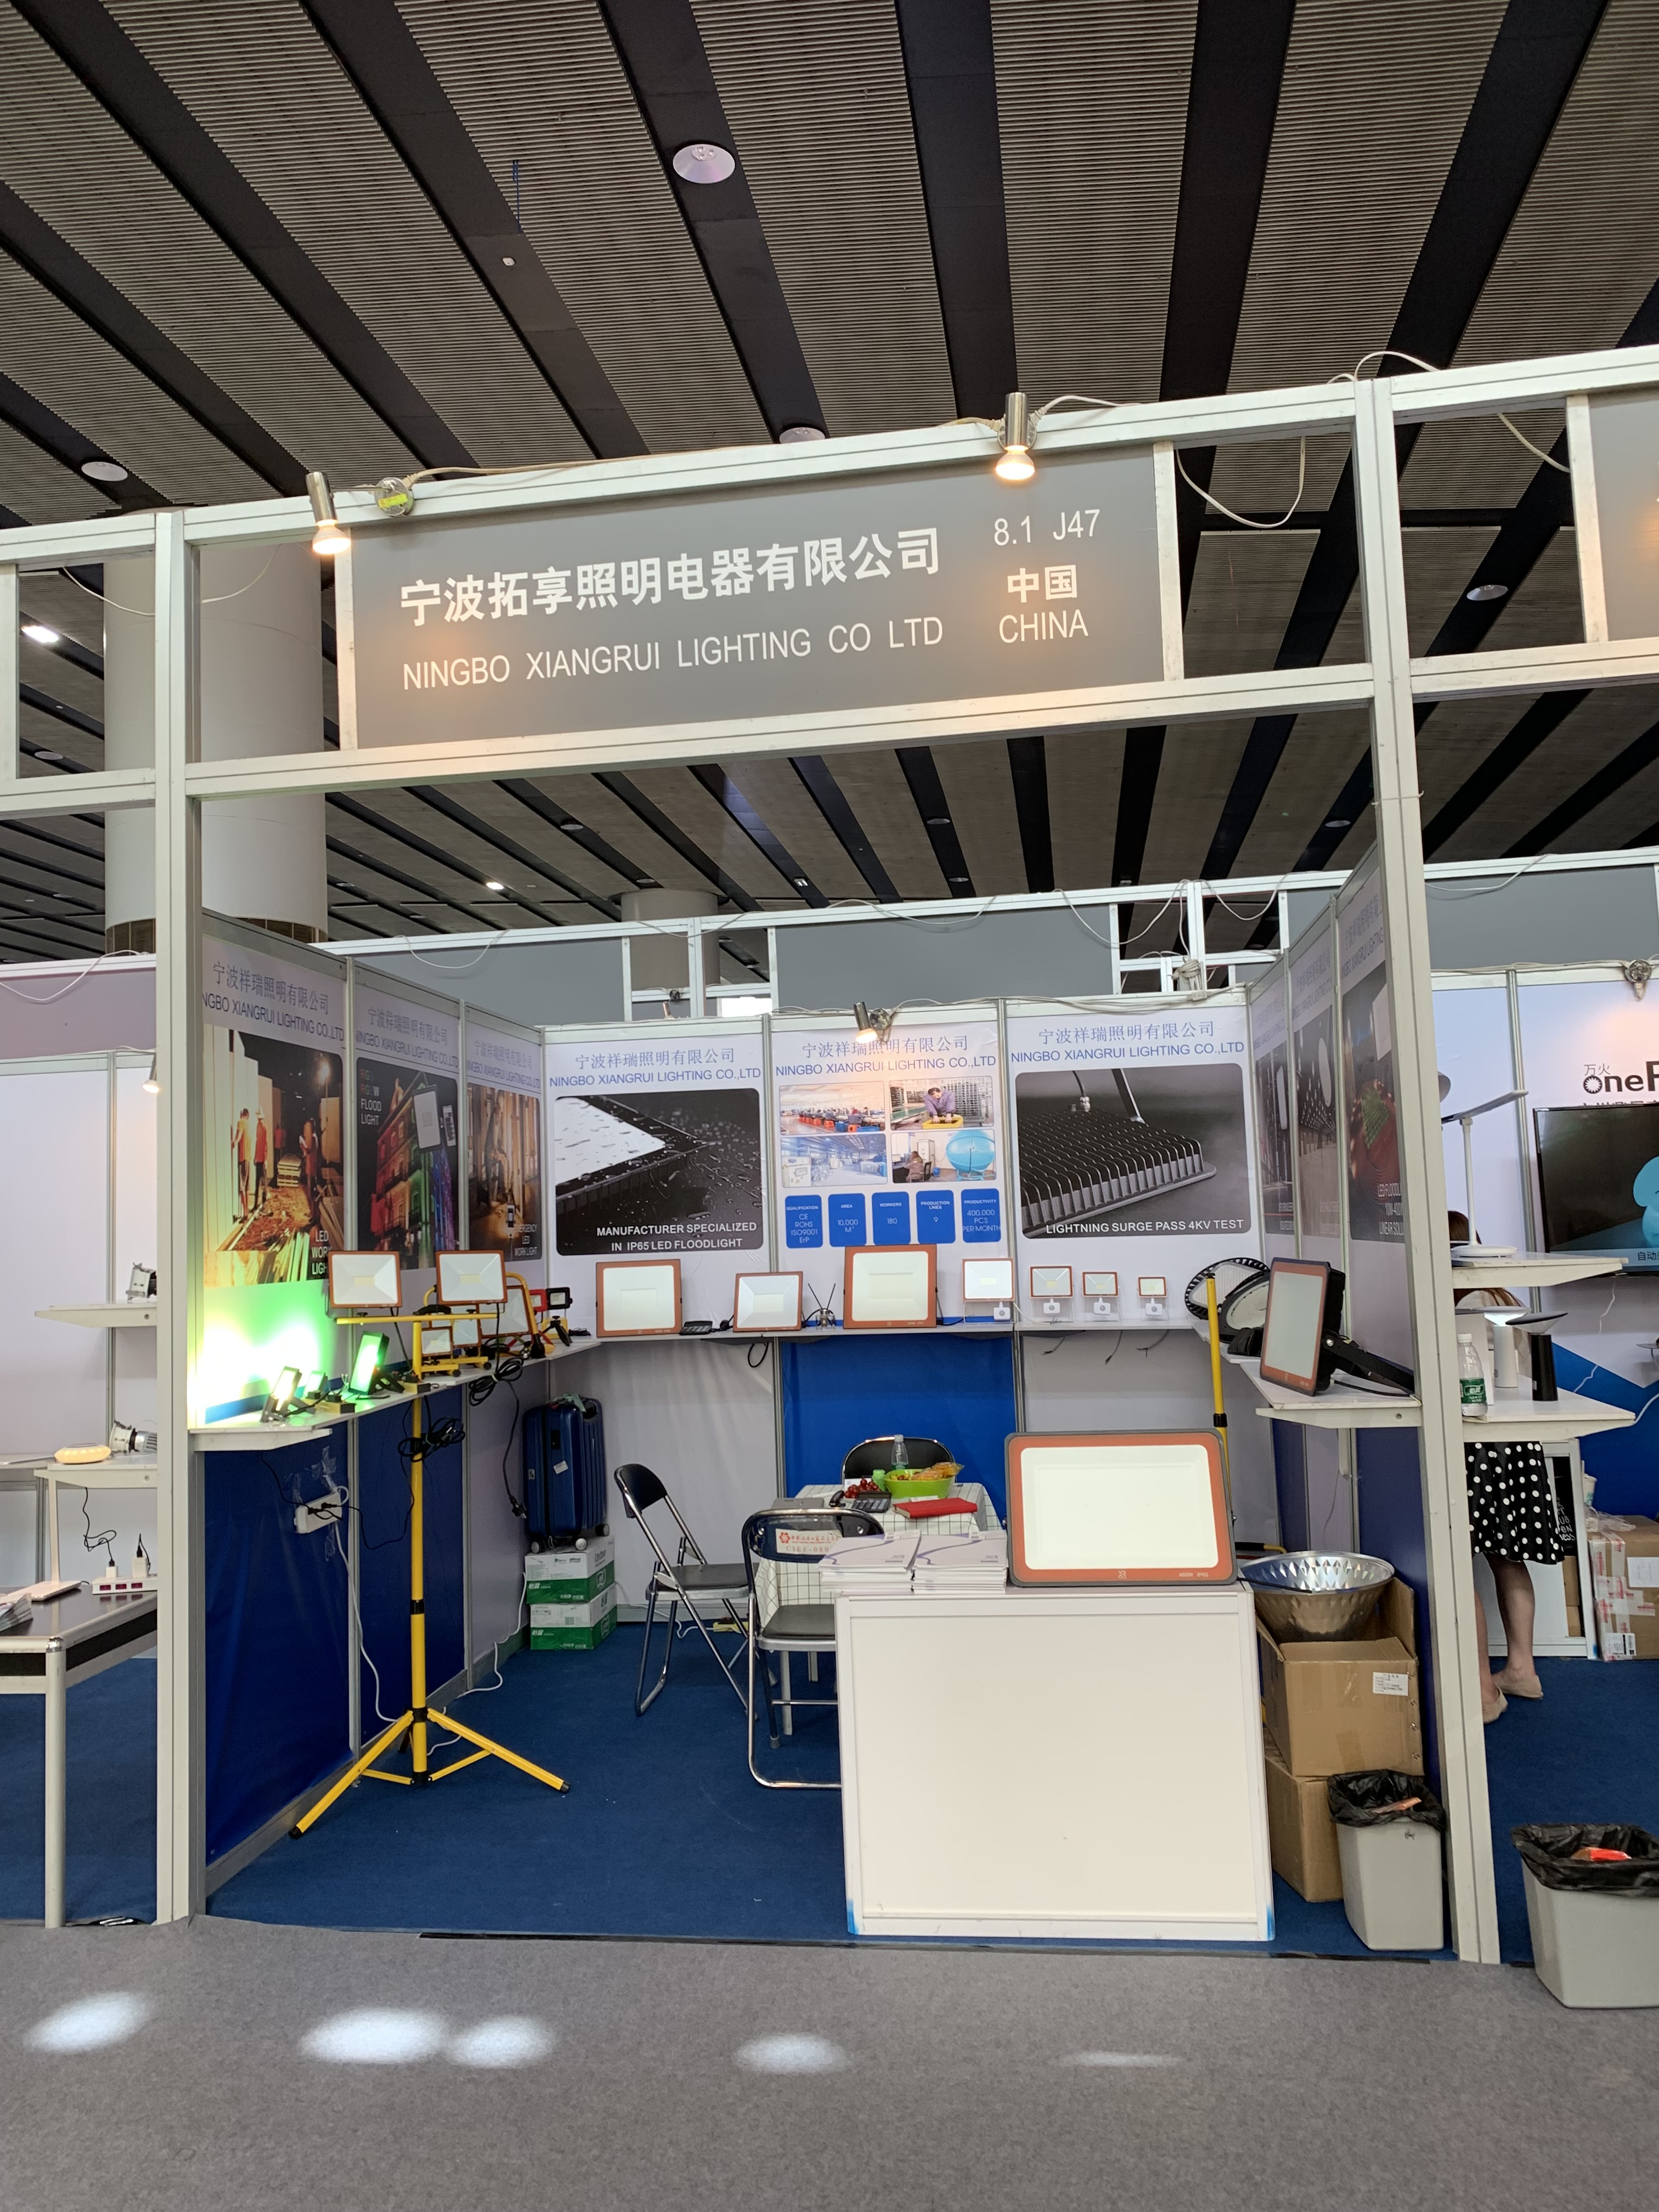 Review of 24th Guangzhou International Lighting Exhibition